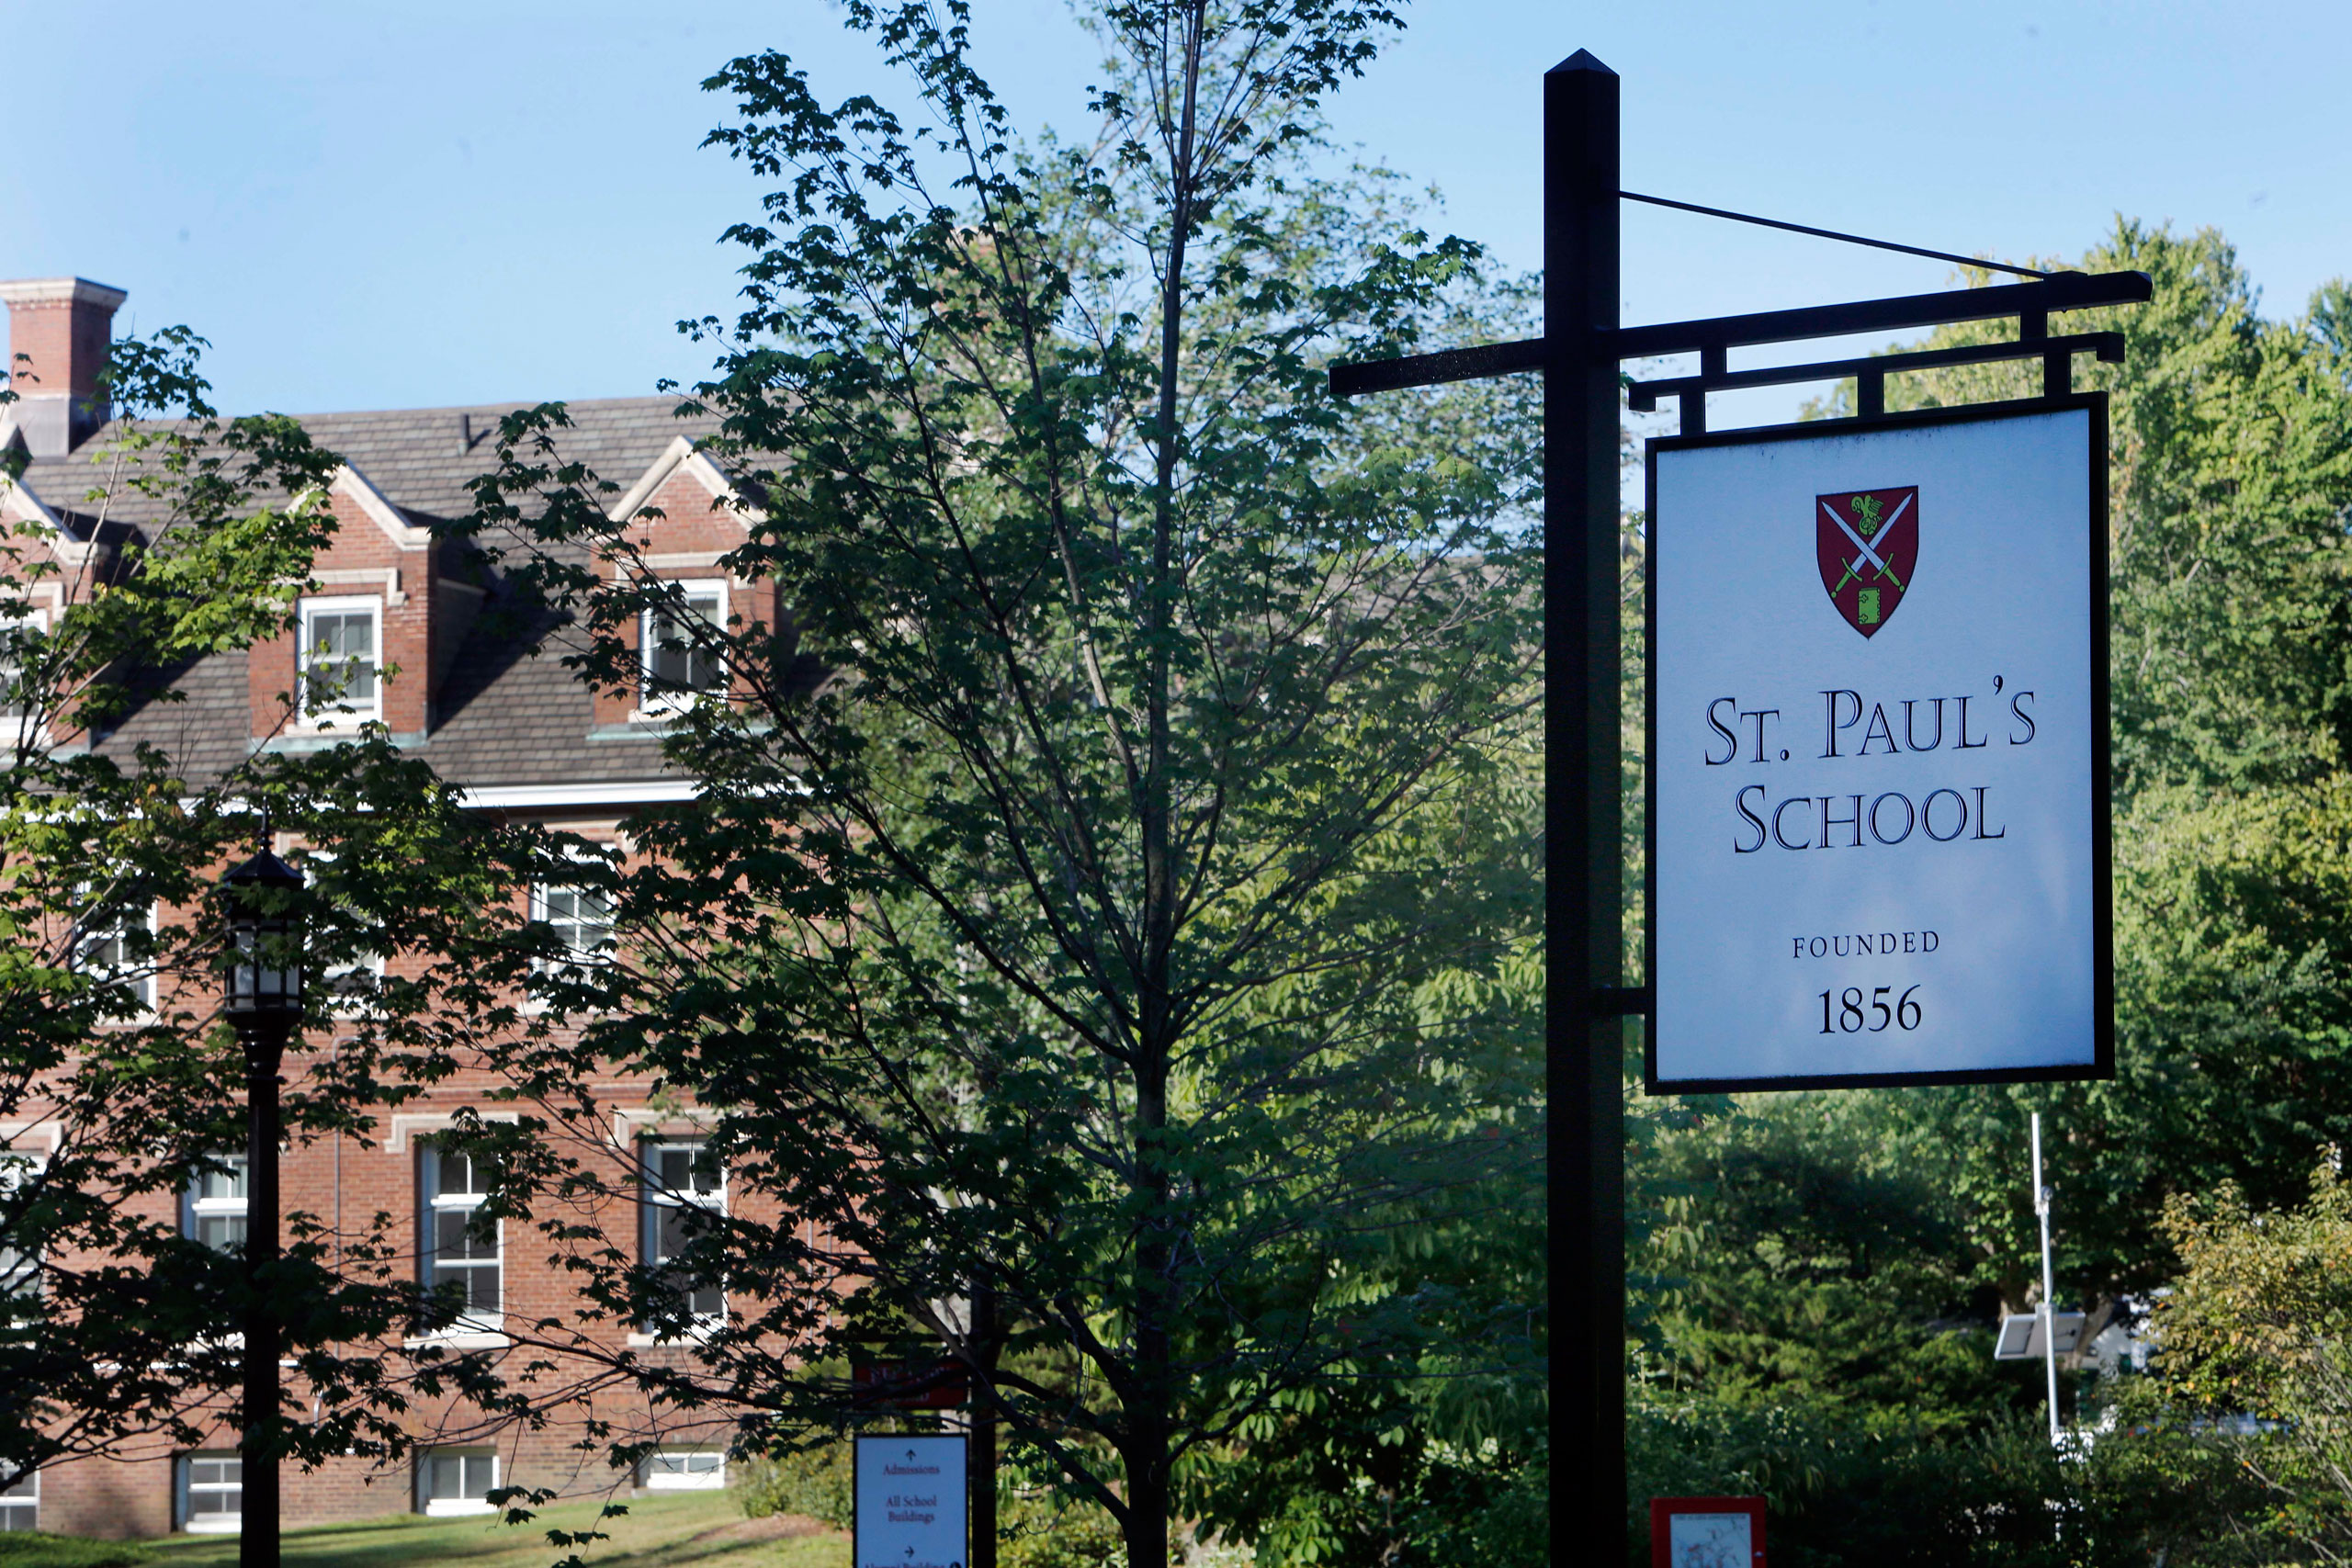 The entrance to the elite St. Paul's School in Concord, N.H., is seen on Aug. 14, 2015.